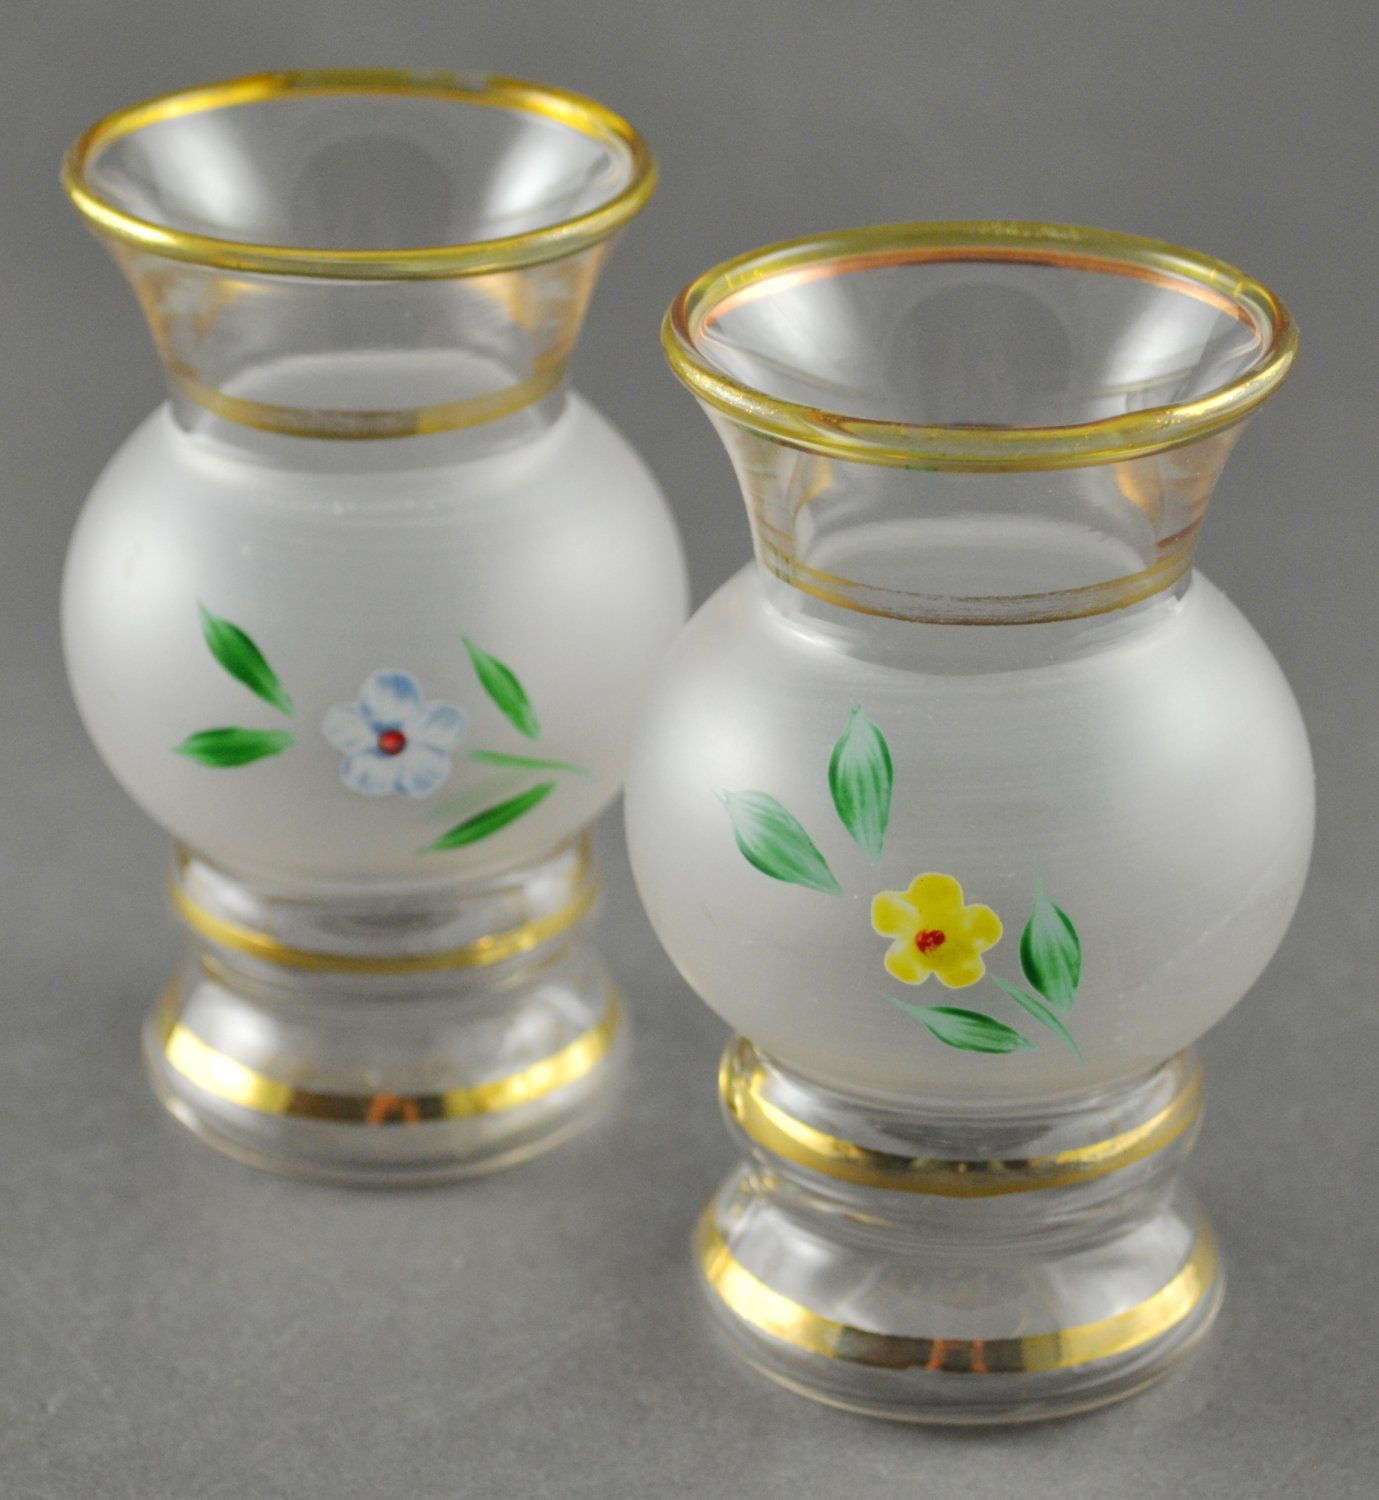 Pair of Clear and Frosted Glass Bud Vases Floral Design